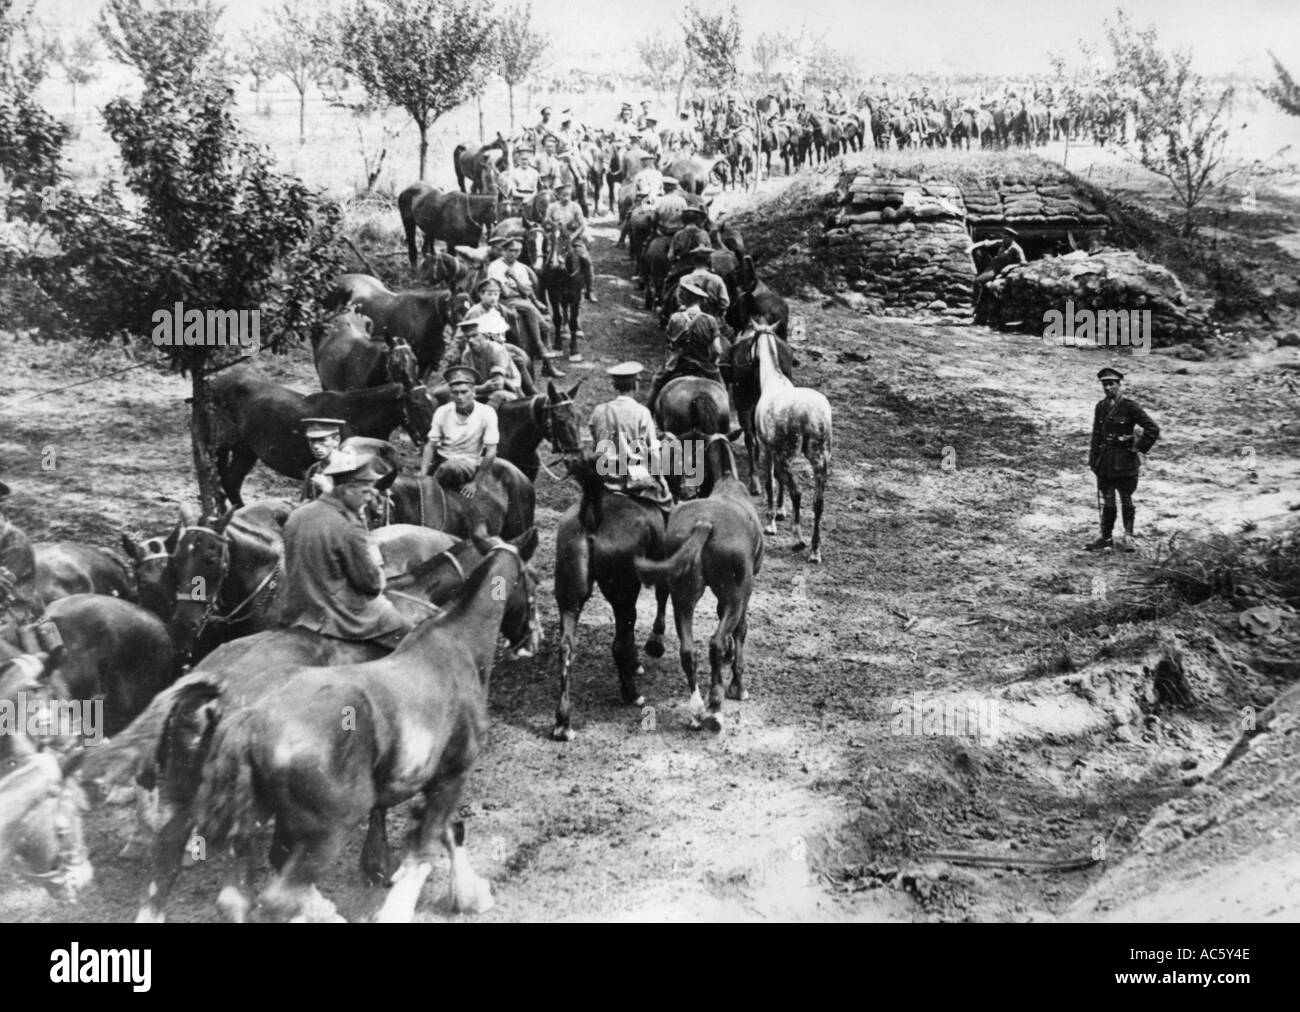 WWI British artillery horses at a watering hole probably in Palestine - Stock Image